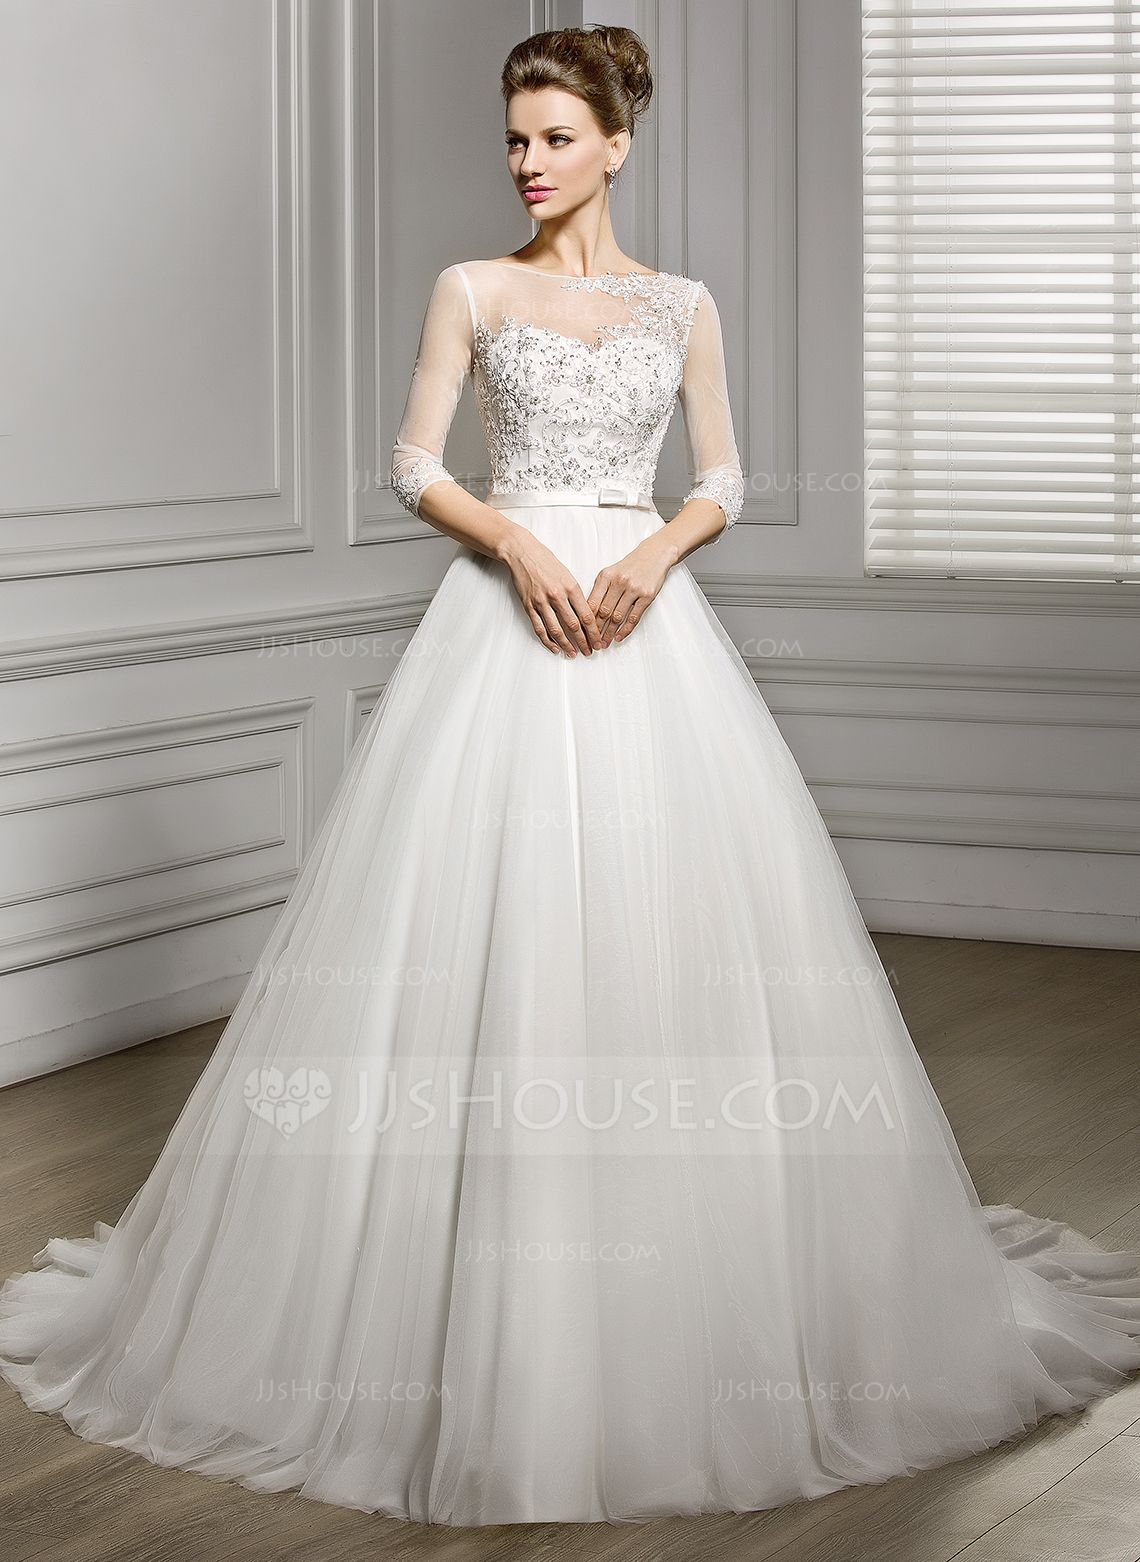 A-Line/Princess Scoop Neck Court Train Satin Tulle Wedding Dress With Beading Appliques Lace Sequins Bow(s) (002056956) - JJsHouse